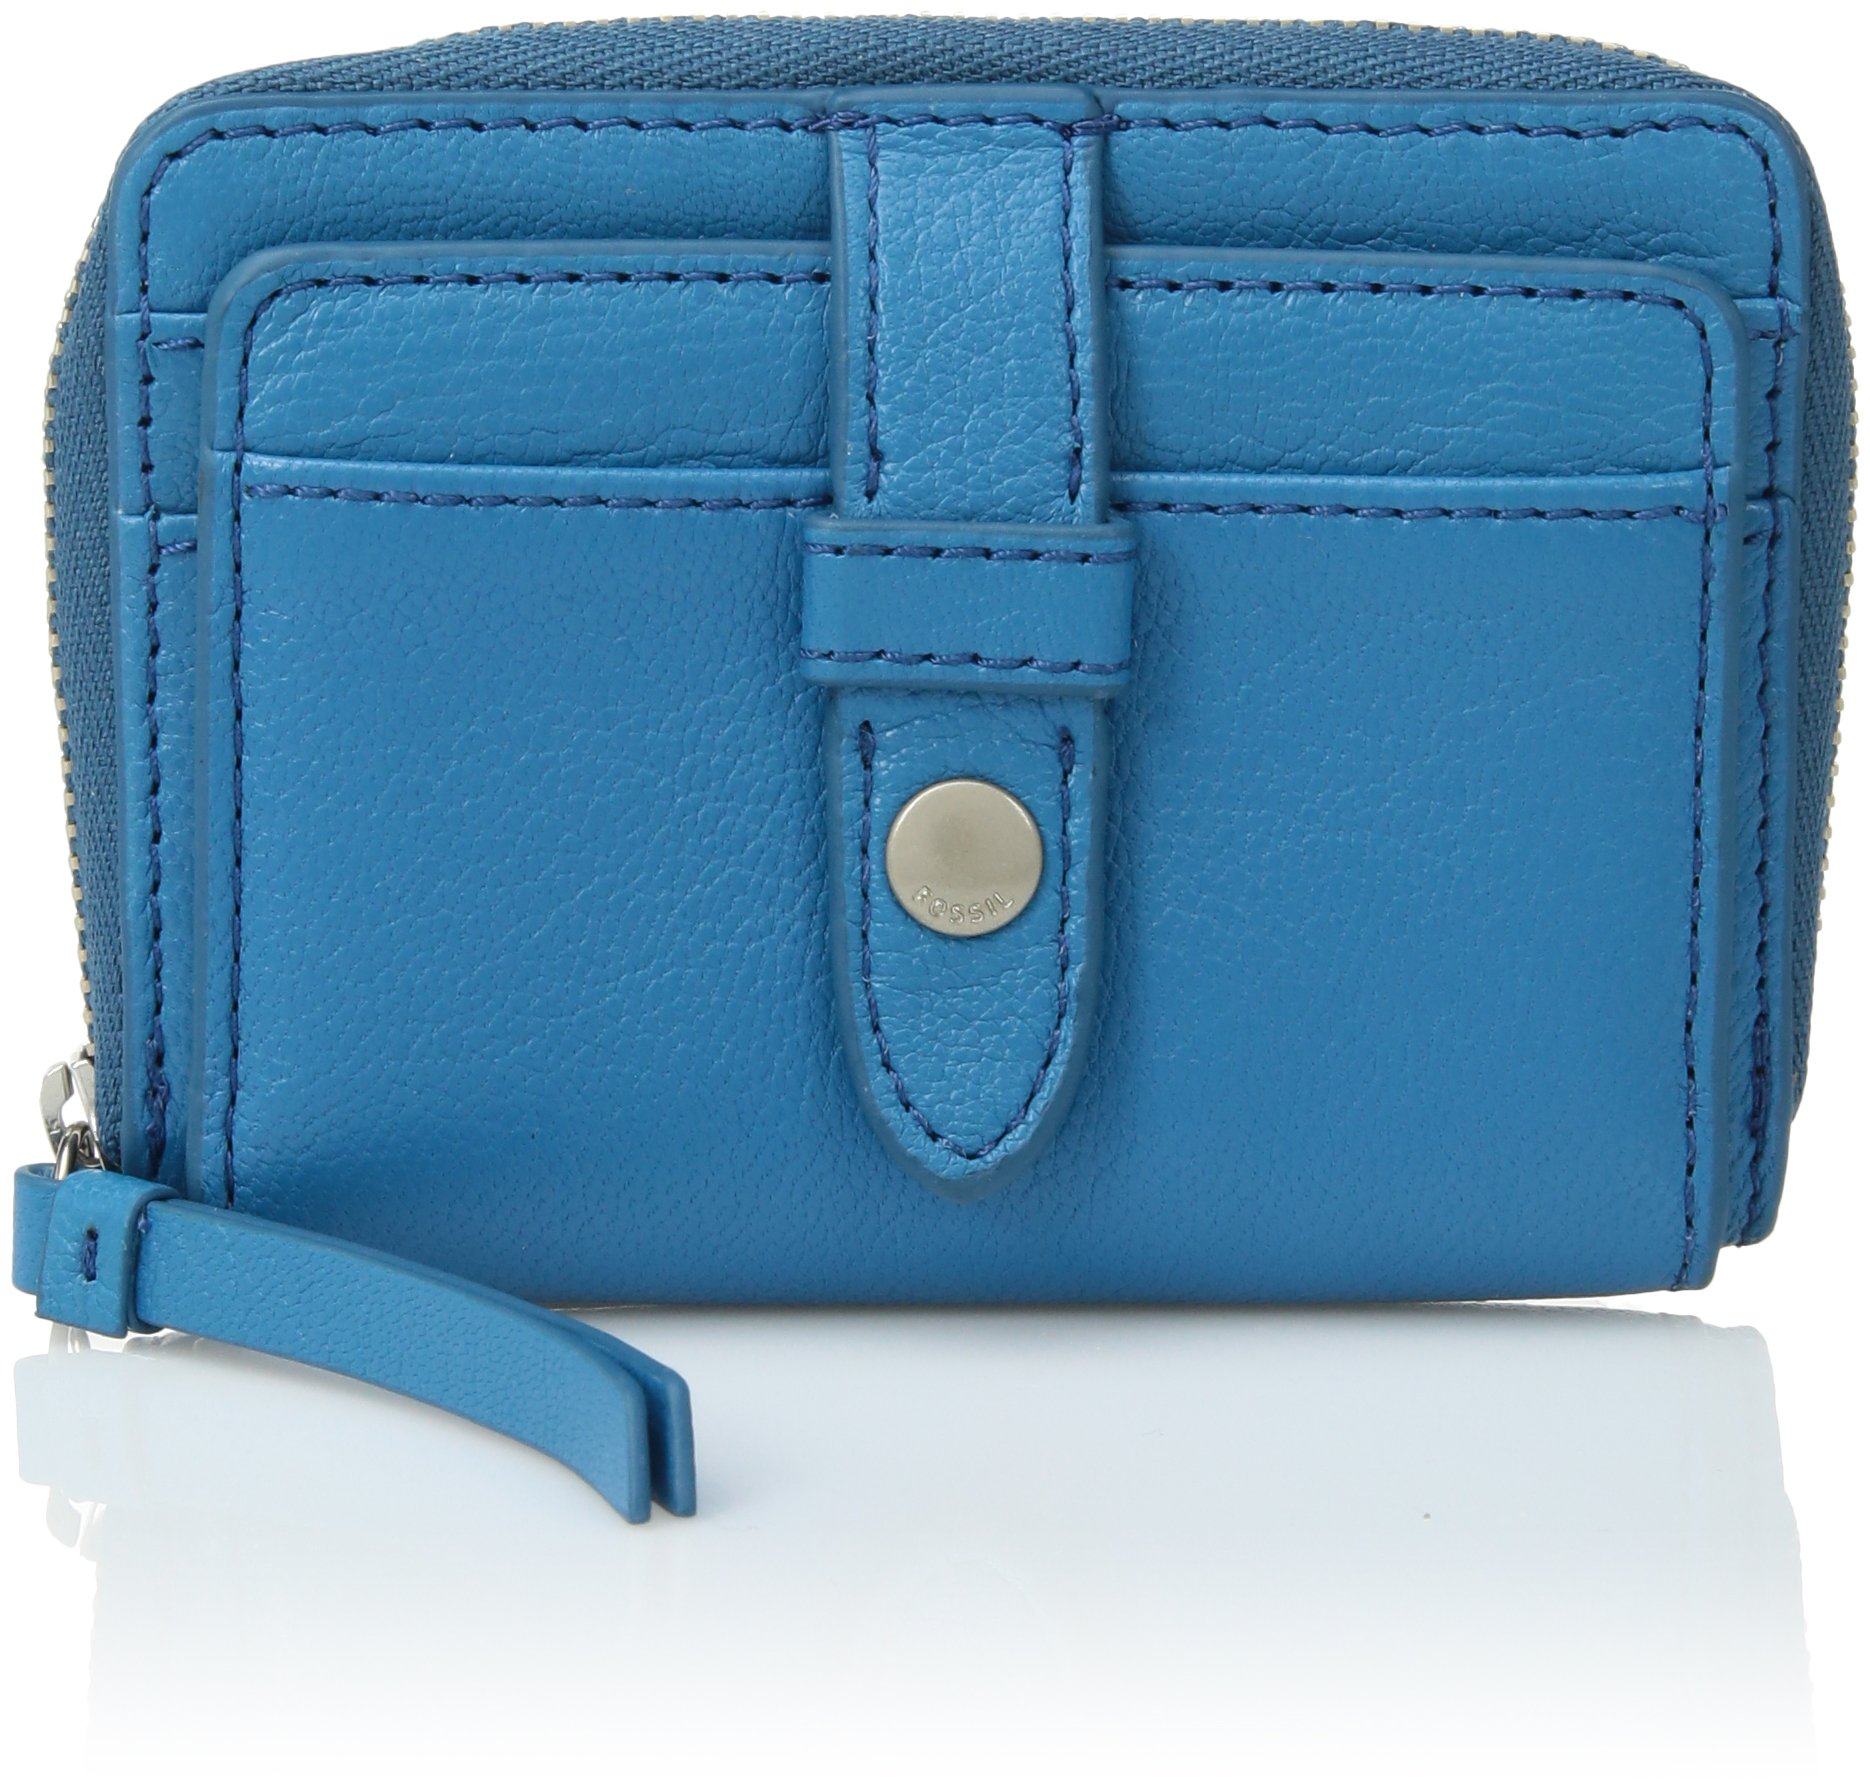 Fossil Fiona Zip Coin Purse, Cerulean